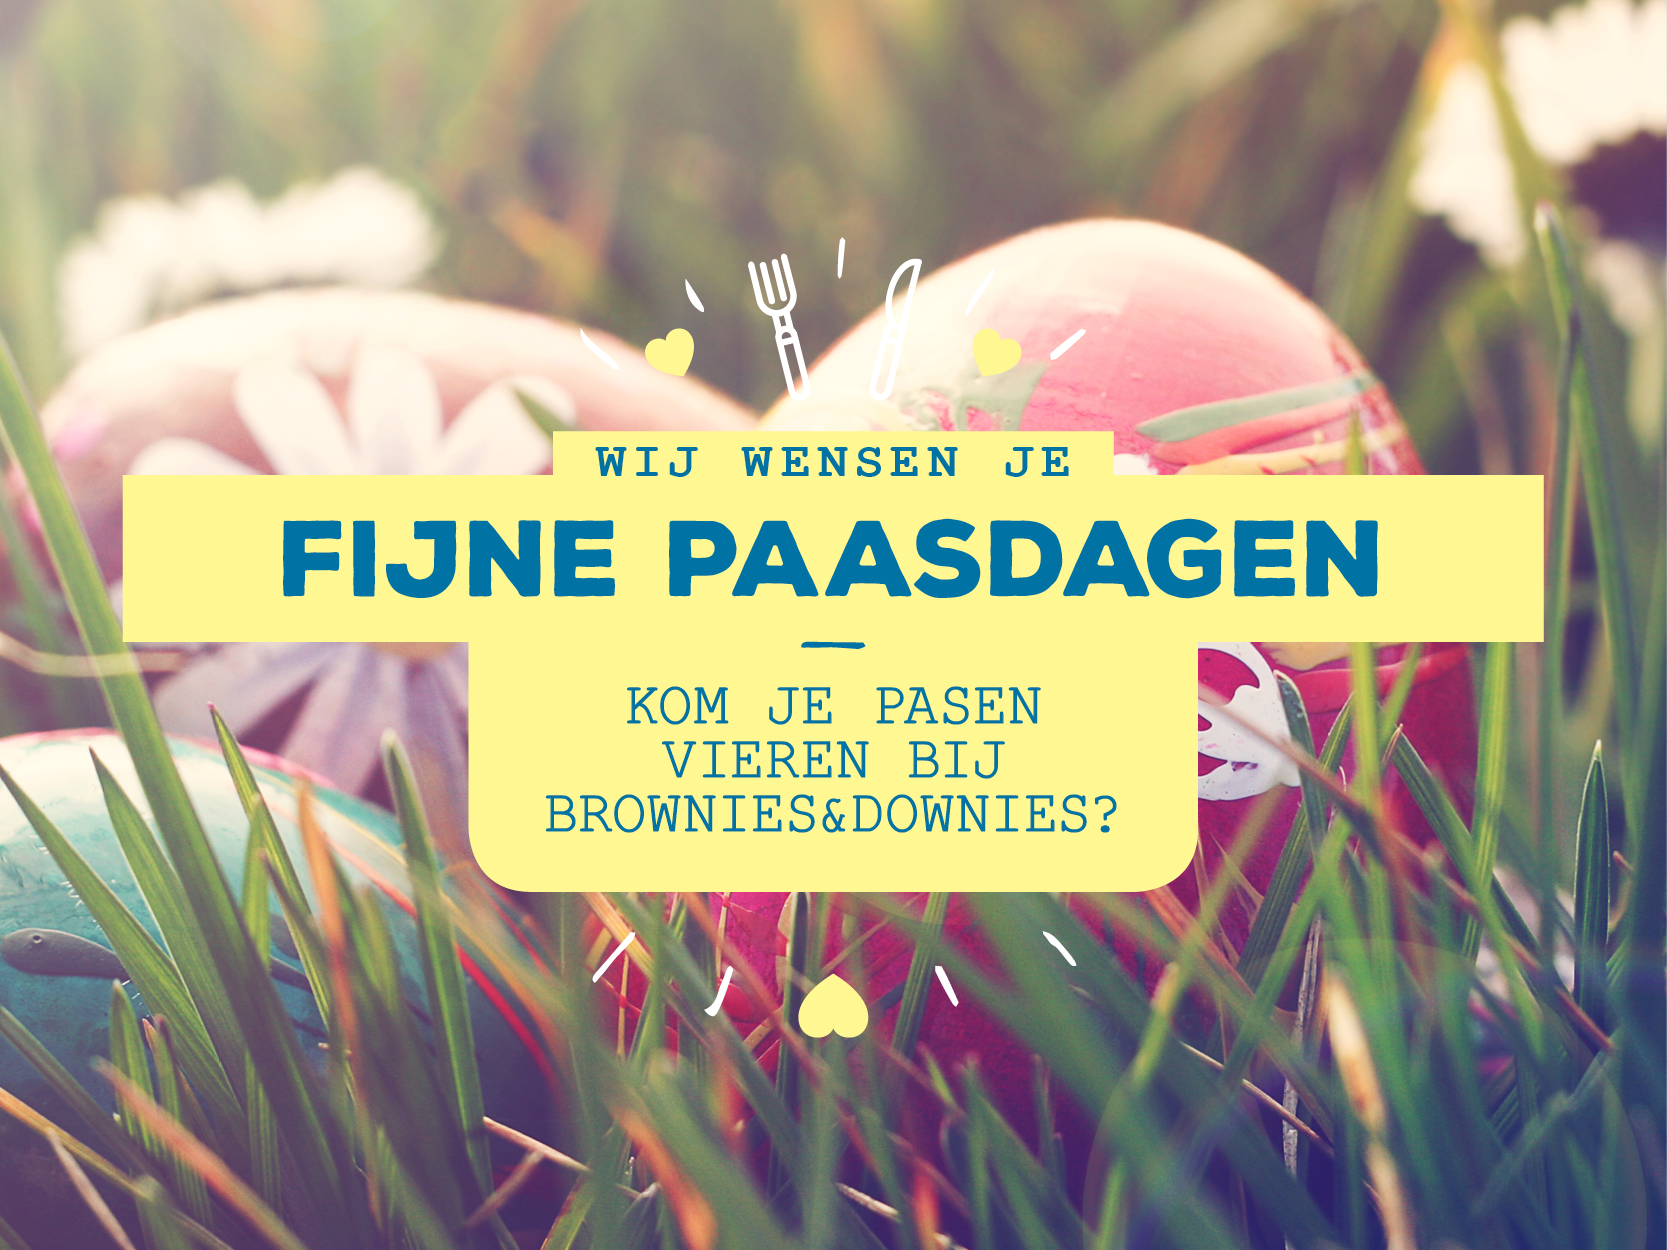 Pasen_Brownies_downieS_Baarle_Hertog_Nassau